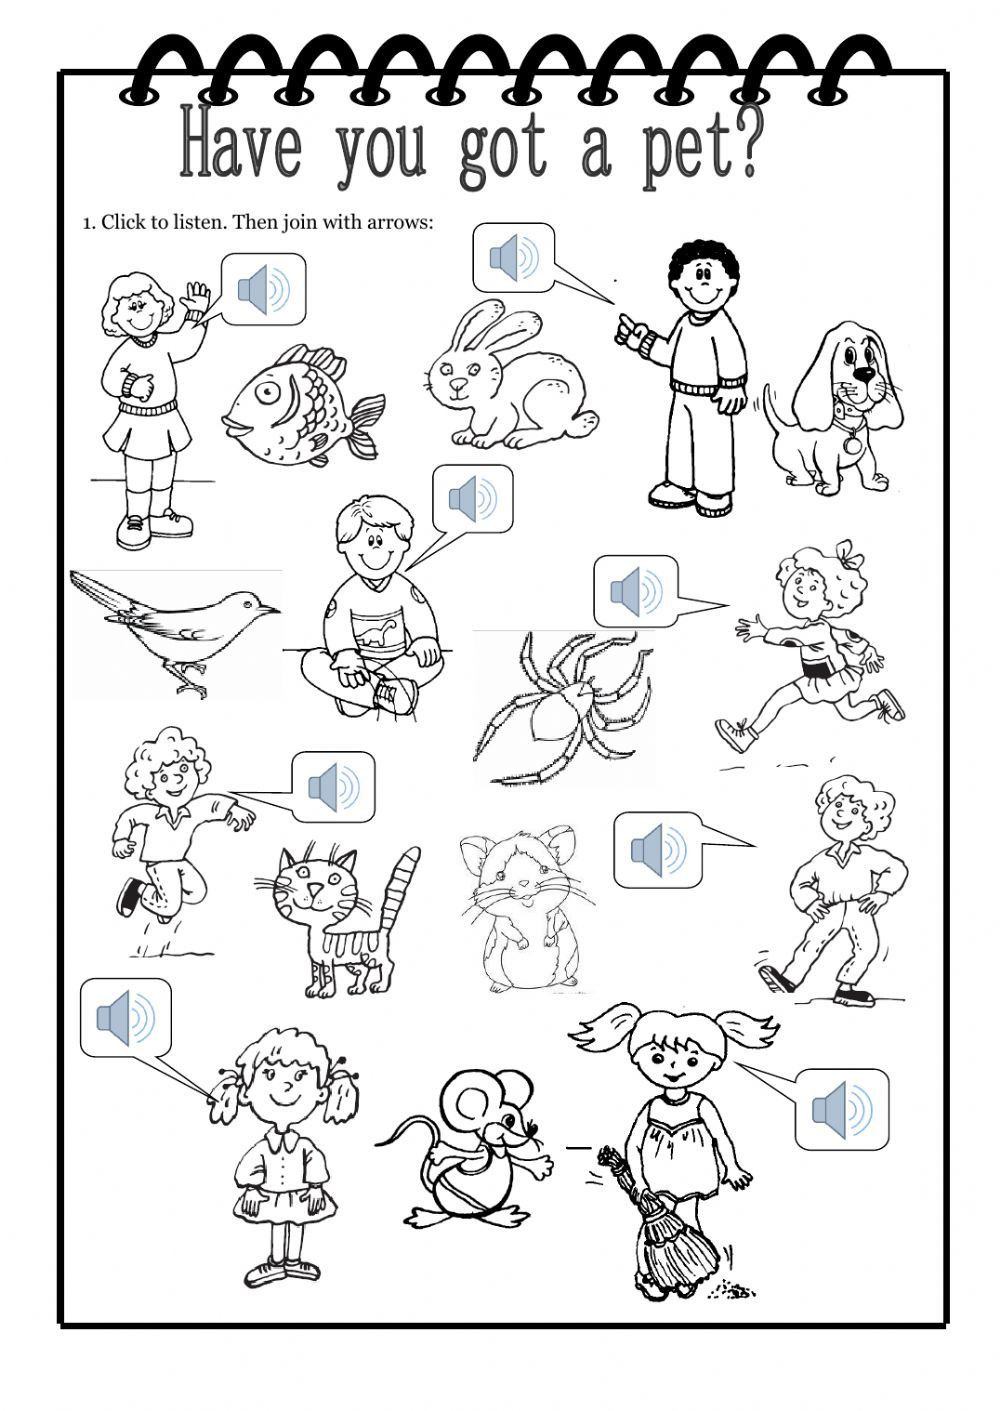 the animals interactive and downloadable worksheet you can do the exercises online or download. Black Bedroom Furniture Sets. Home Design Ideas